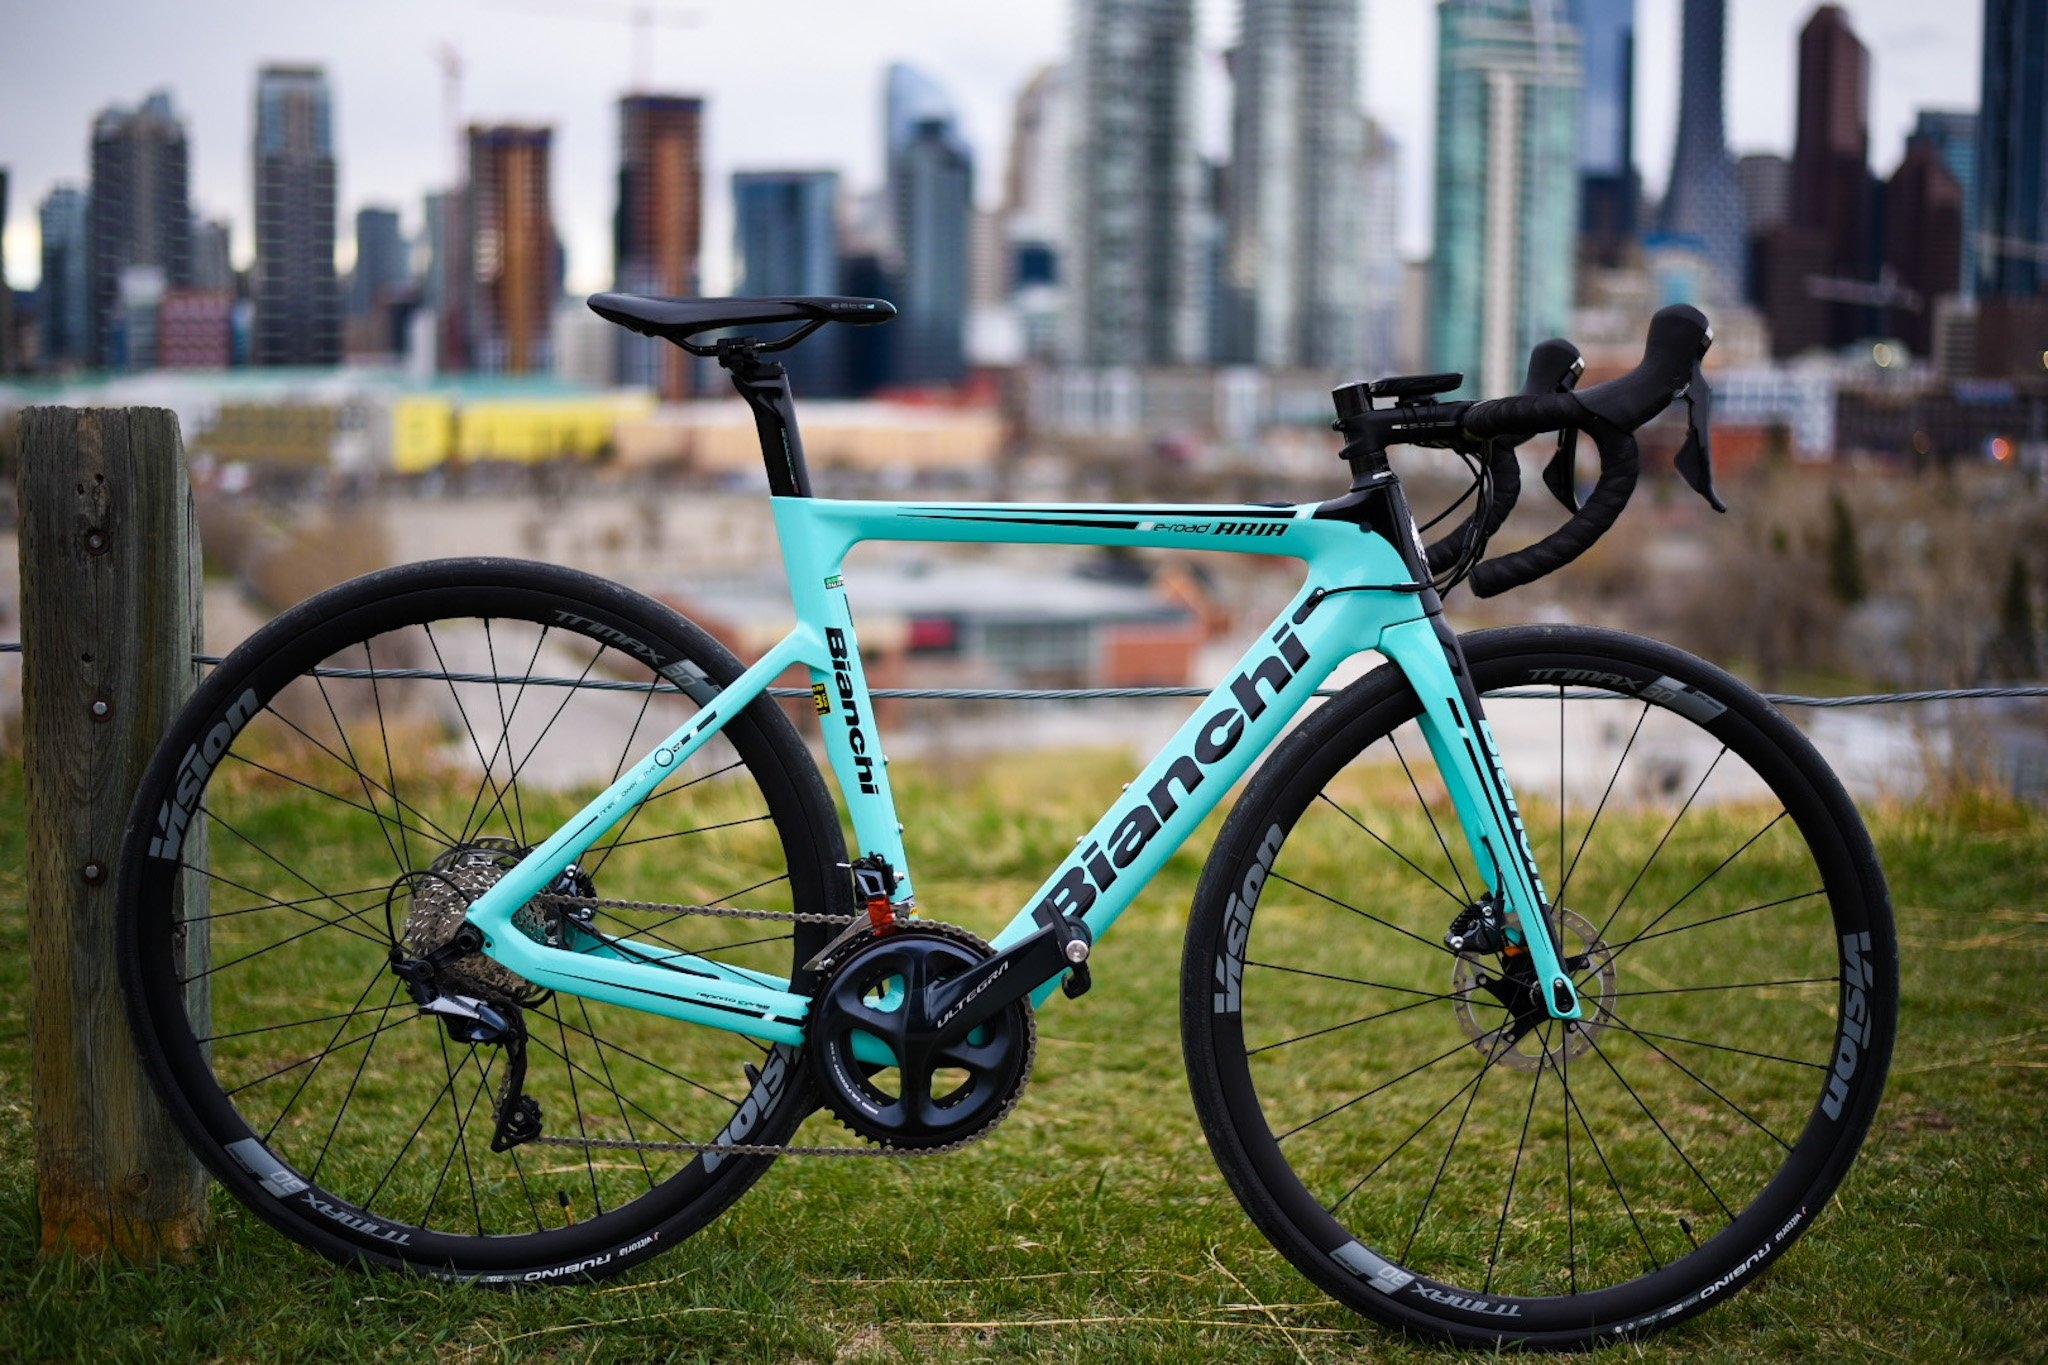 Bianchi Aria e-Road Bike Review